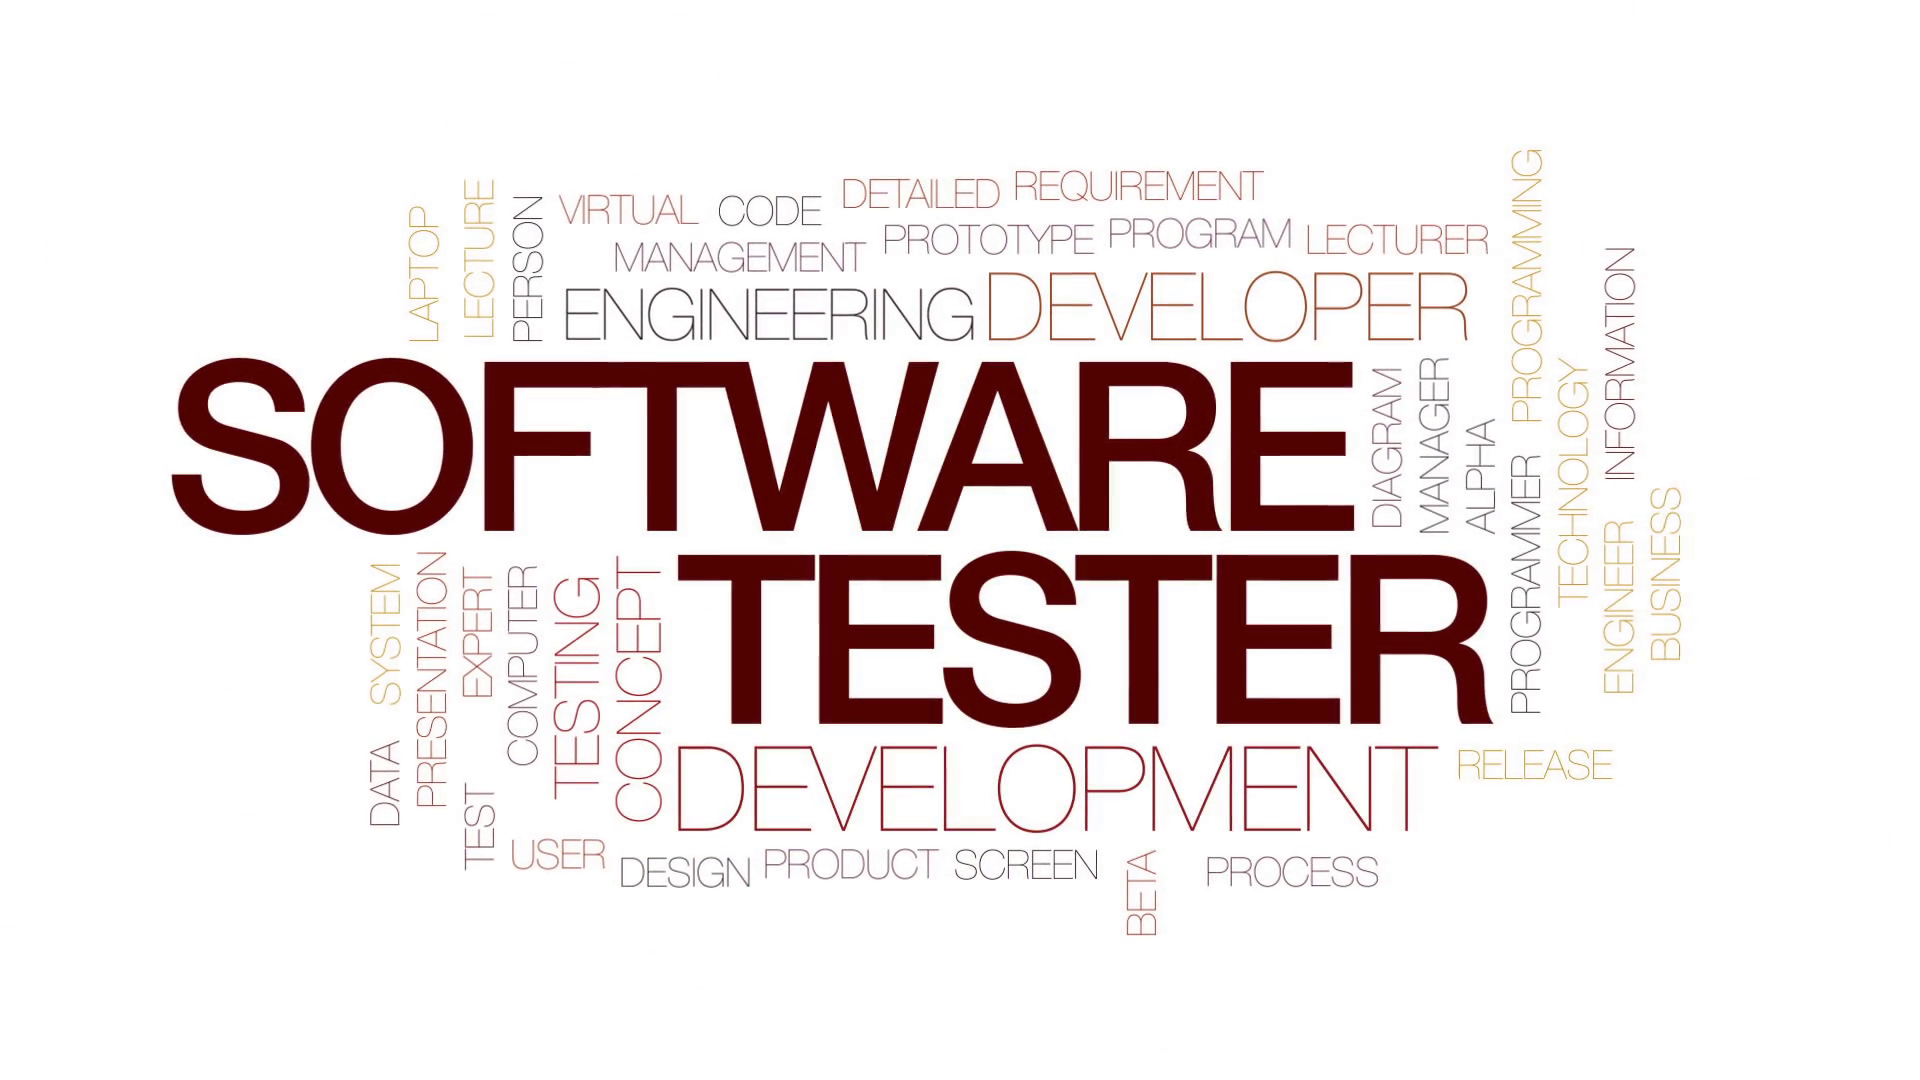 videoblocks-software-tester-animated-word-cloud-text-design-animation-kinetic-typography_hfwyhiahx_thumbnail-full09